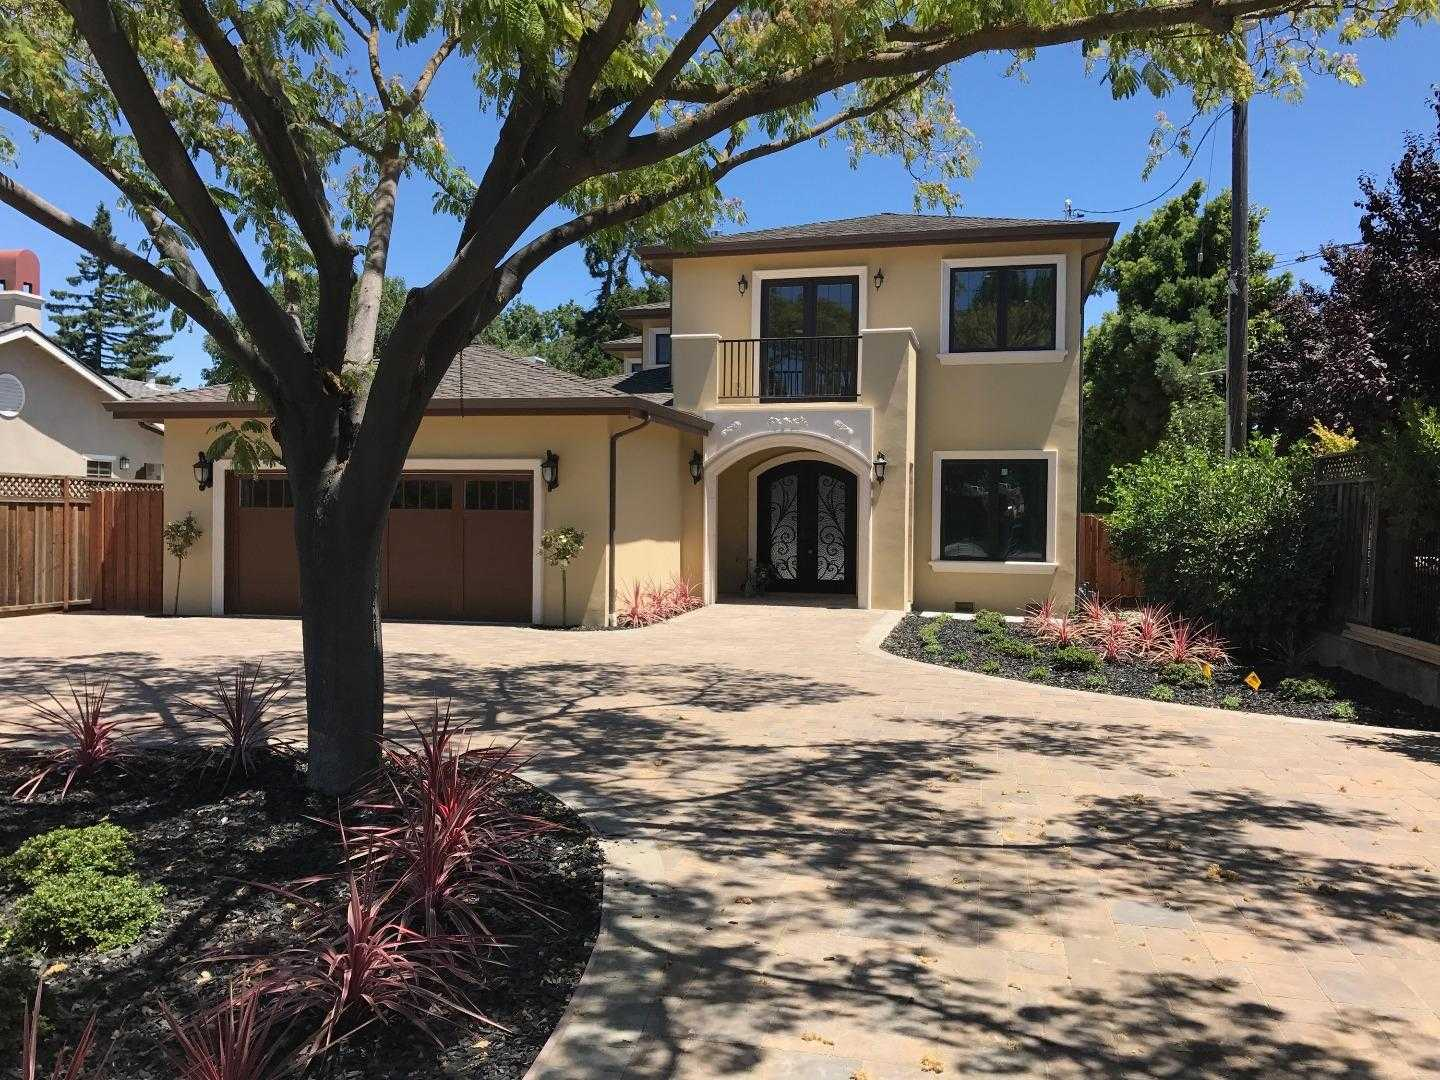 $2,849,900 - 4Br/5Ba -  for Sale in San Jose